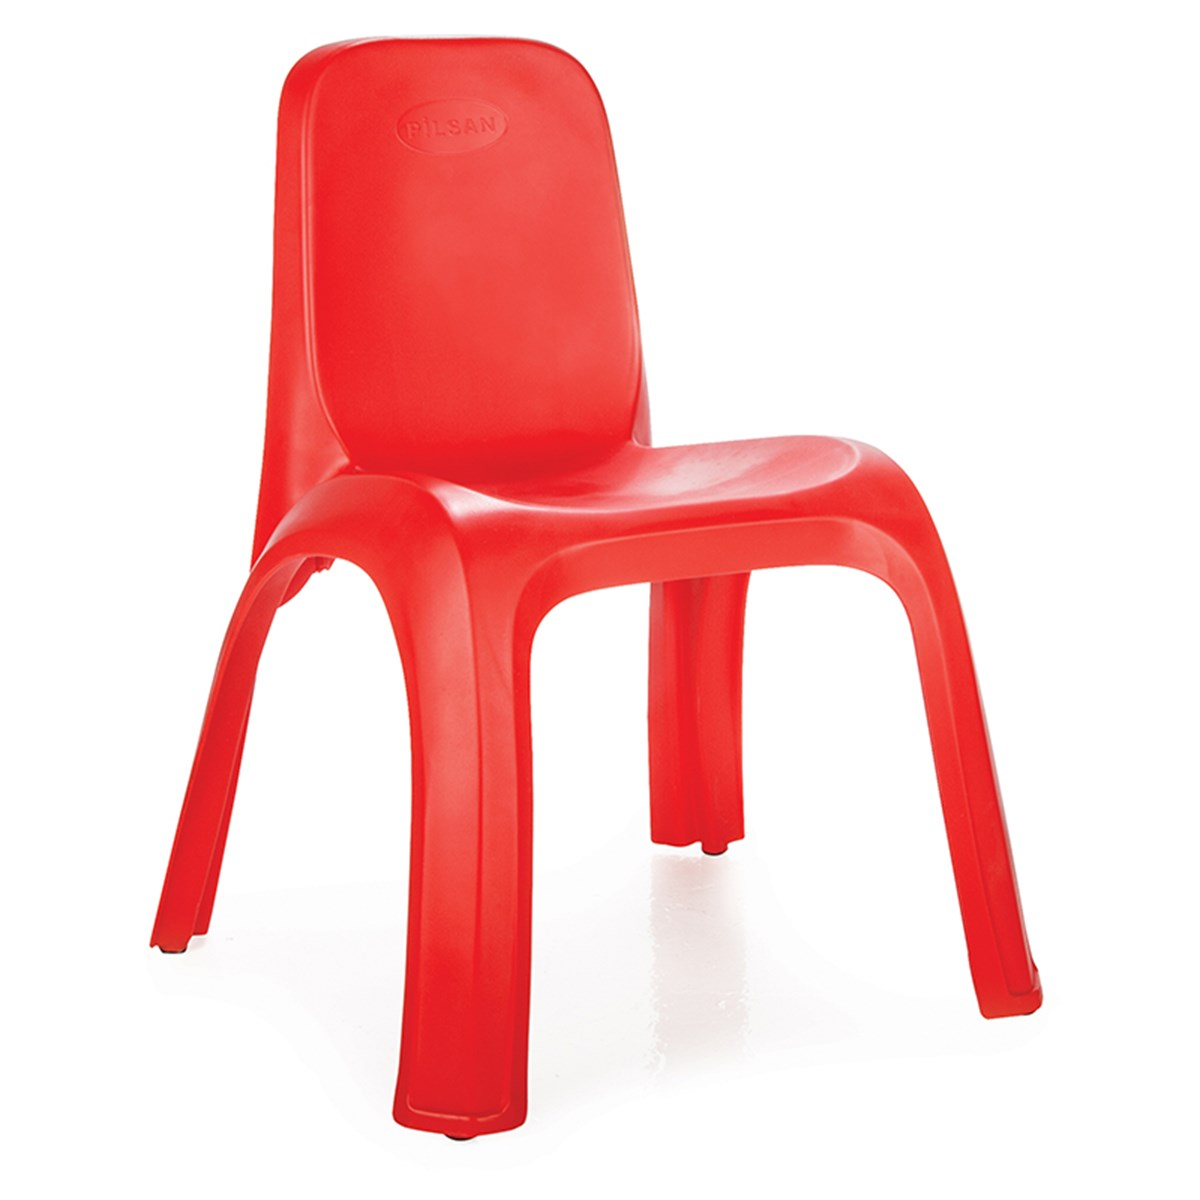 Pilsan King Chair  03417